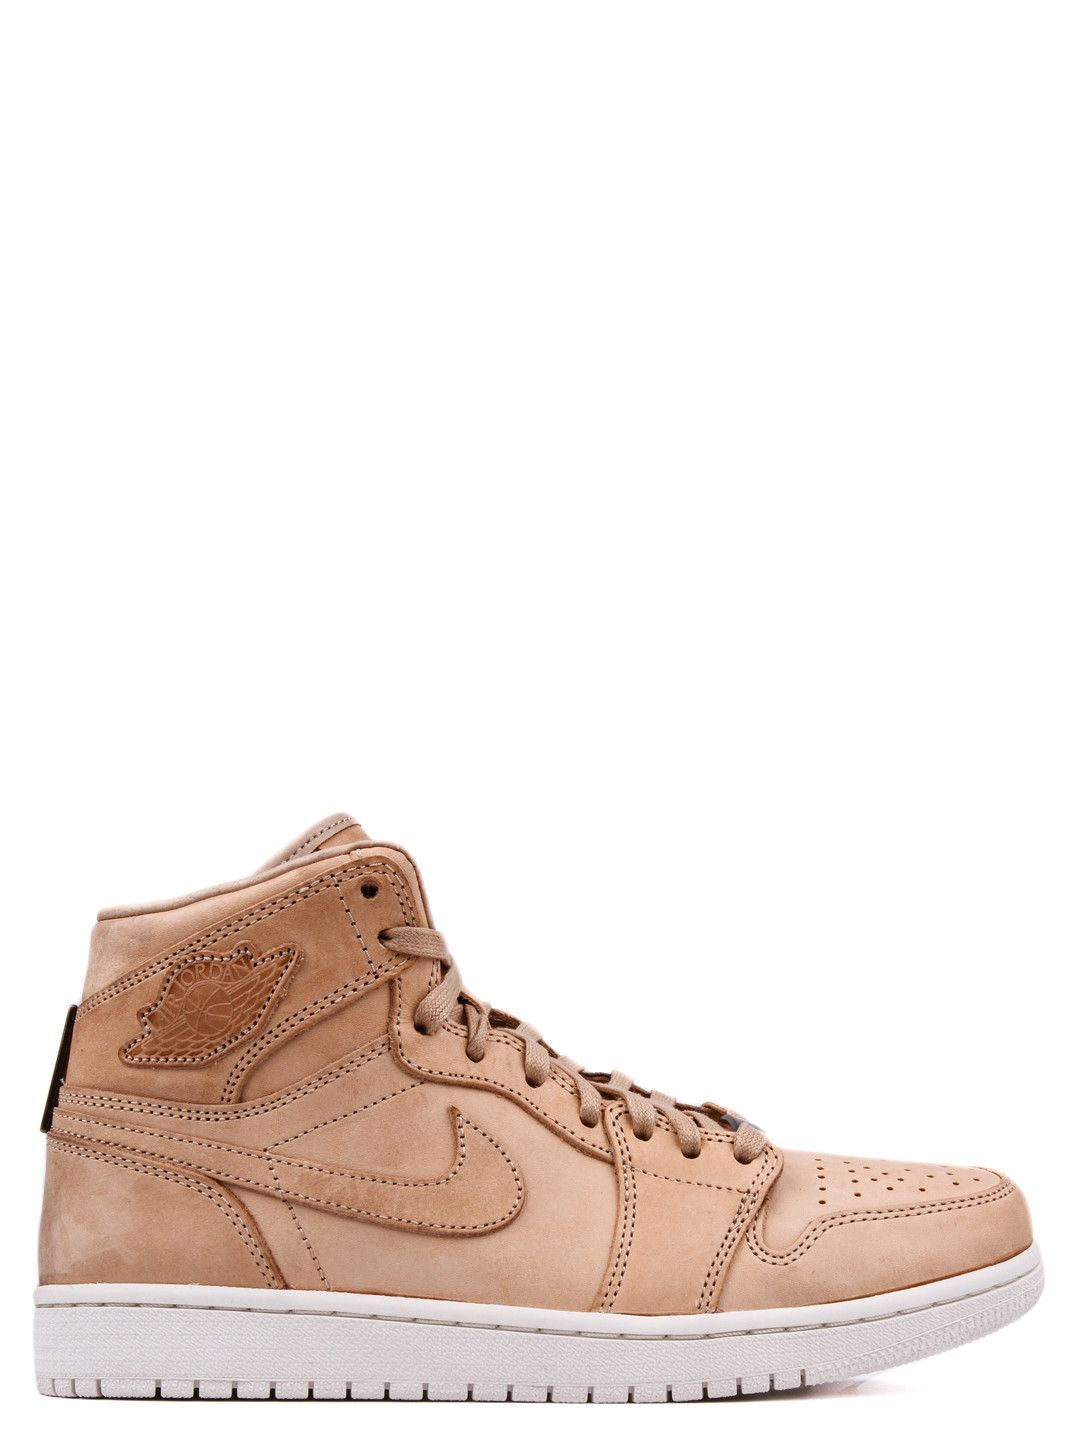 20ad85780e0 Air Jordan 1 pinnacle - Vachetta Tan | Footwear | Air jordans ...